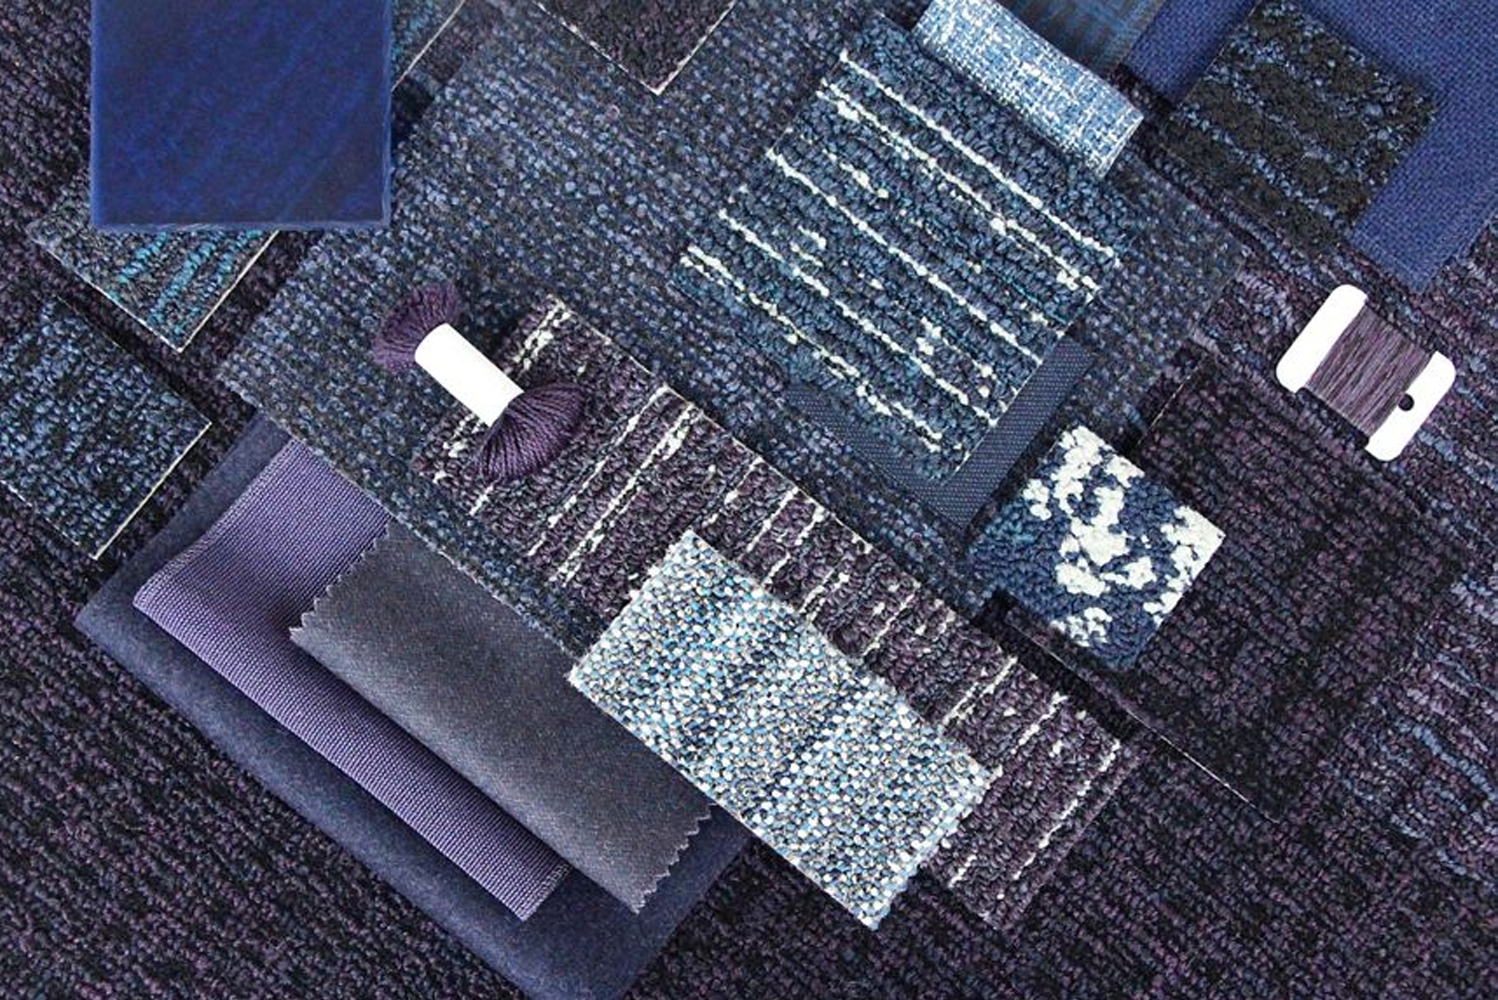 Four styles comprise the Second story collection from Interface Flor.